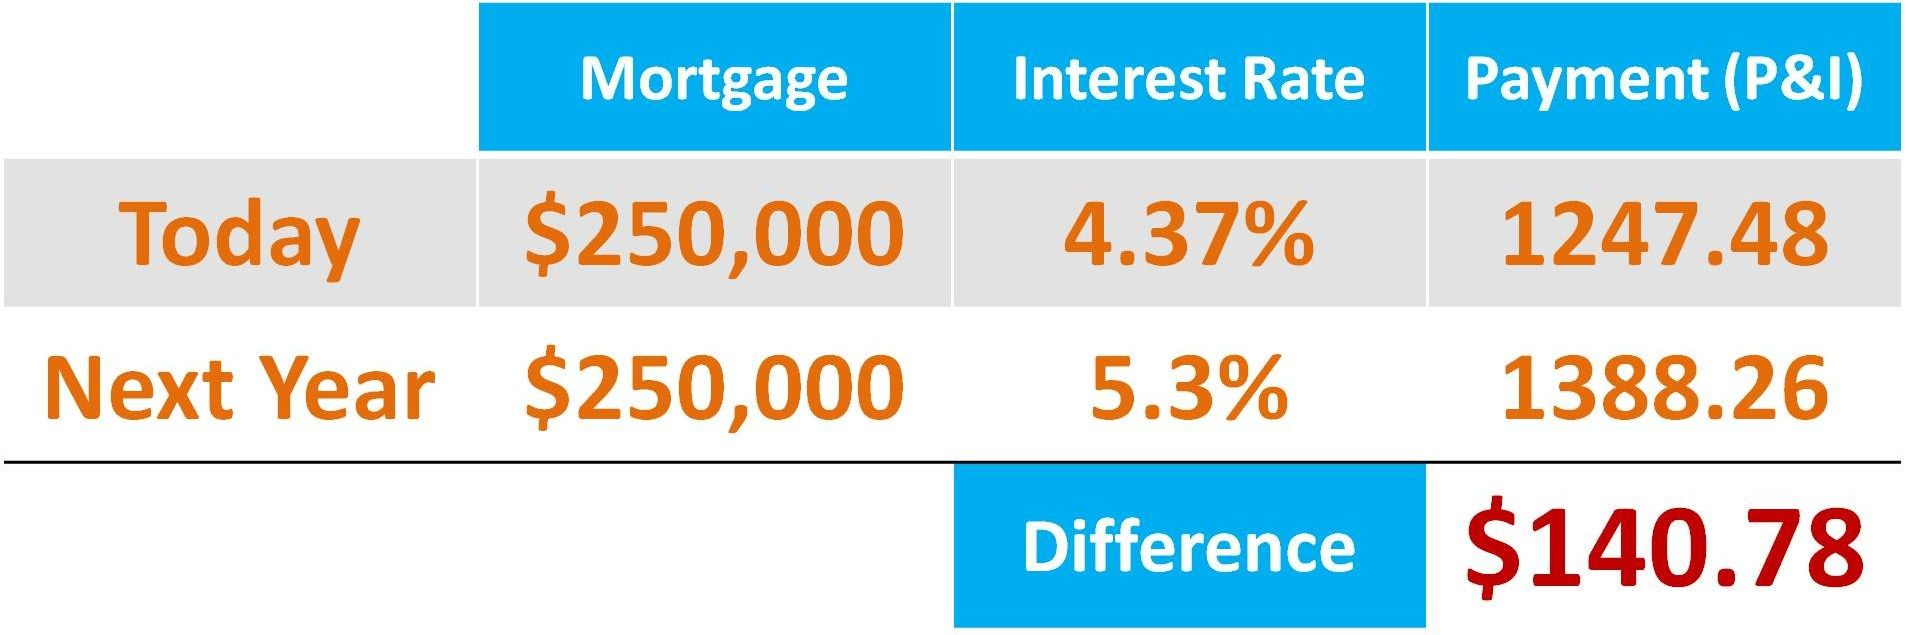 Real Estate with Keeping Current Matters Mortgage